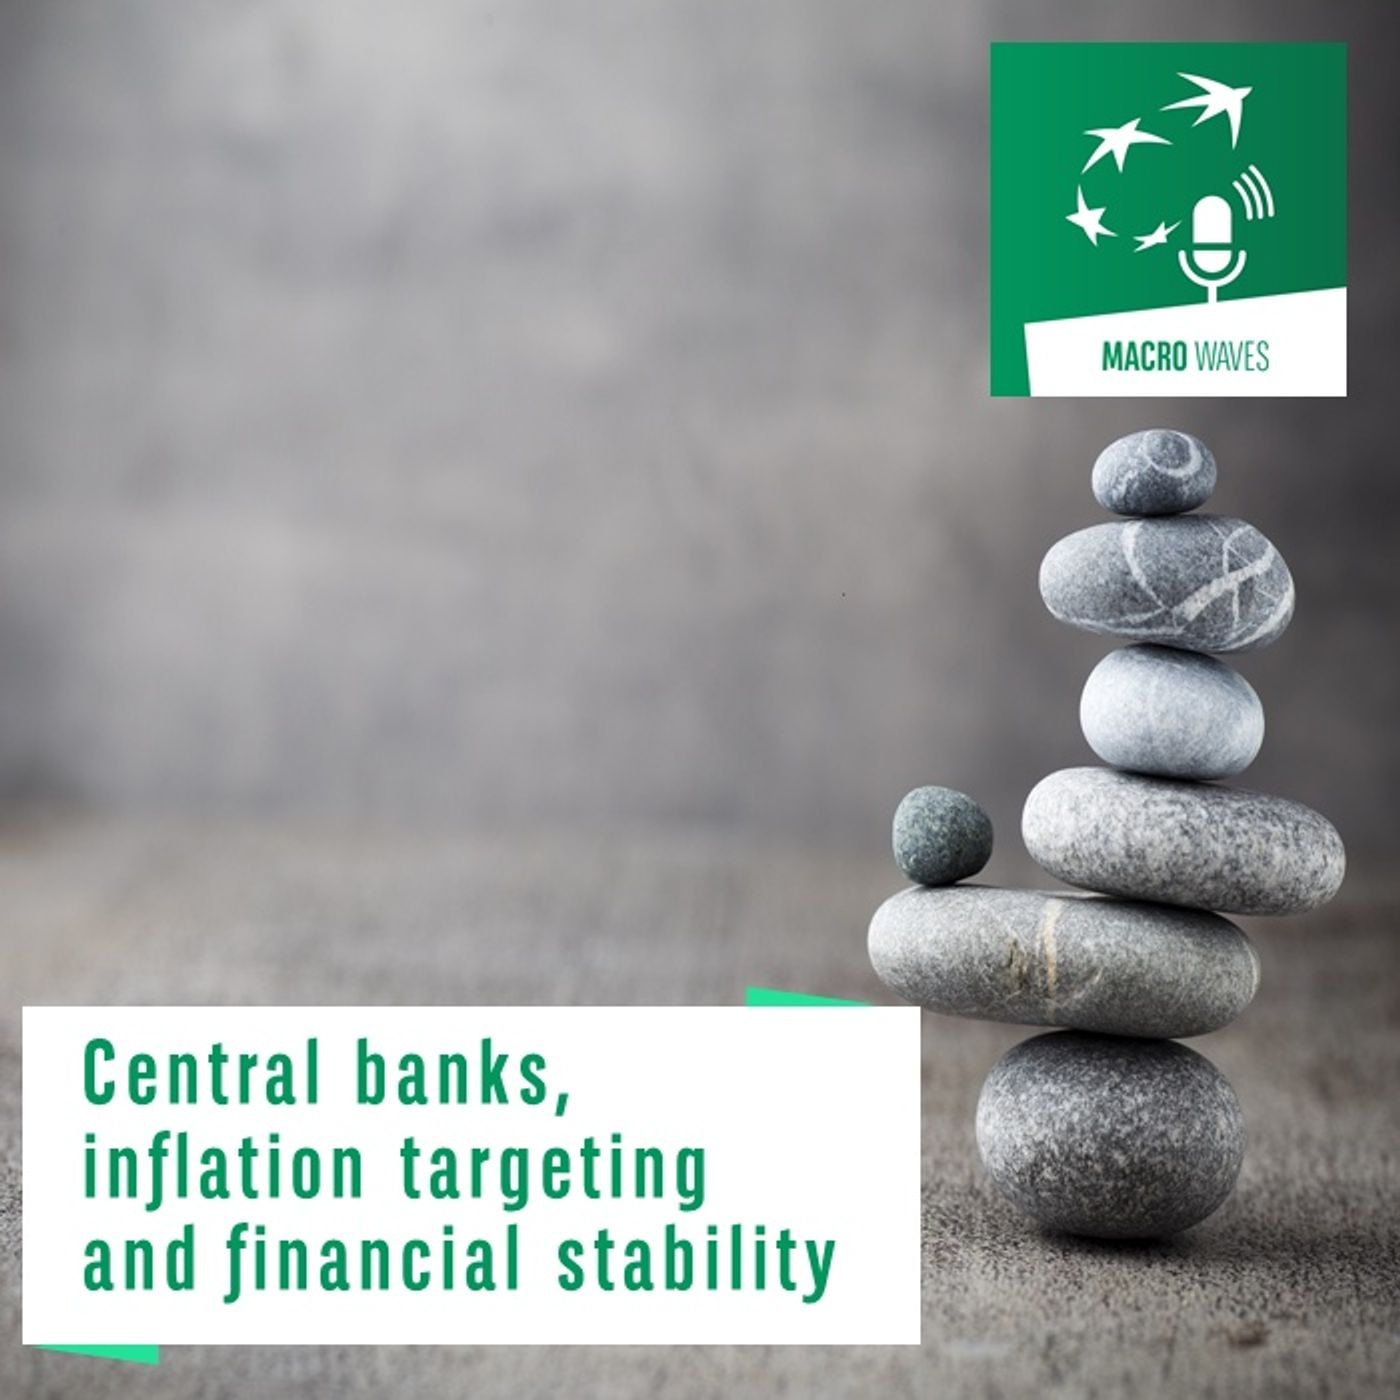 #03 – Central banks, inflation targeting and financial stability